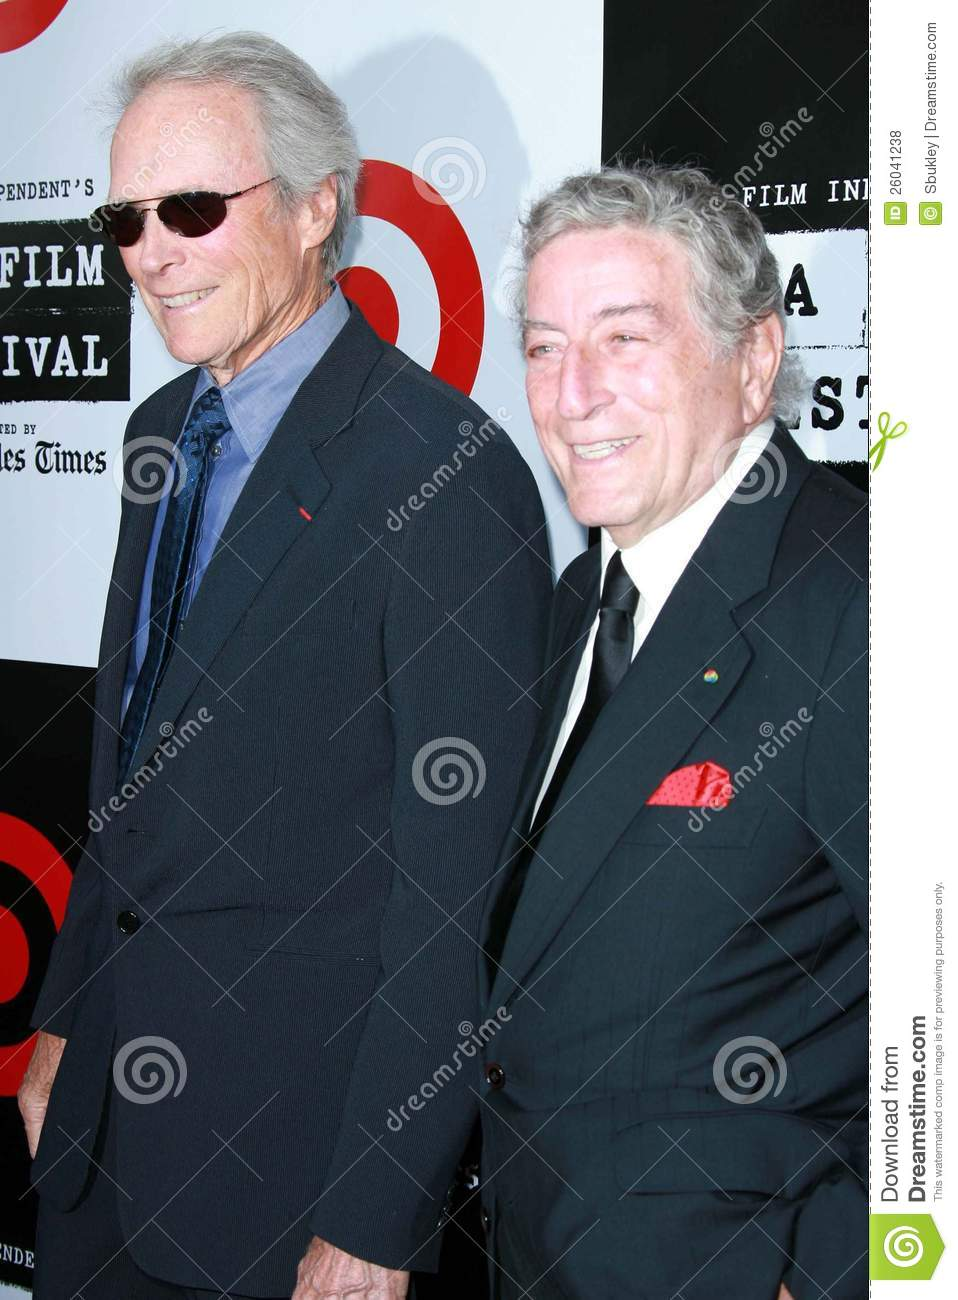 Clint eastwood tony bennett editorial stock photo